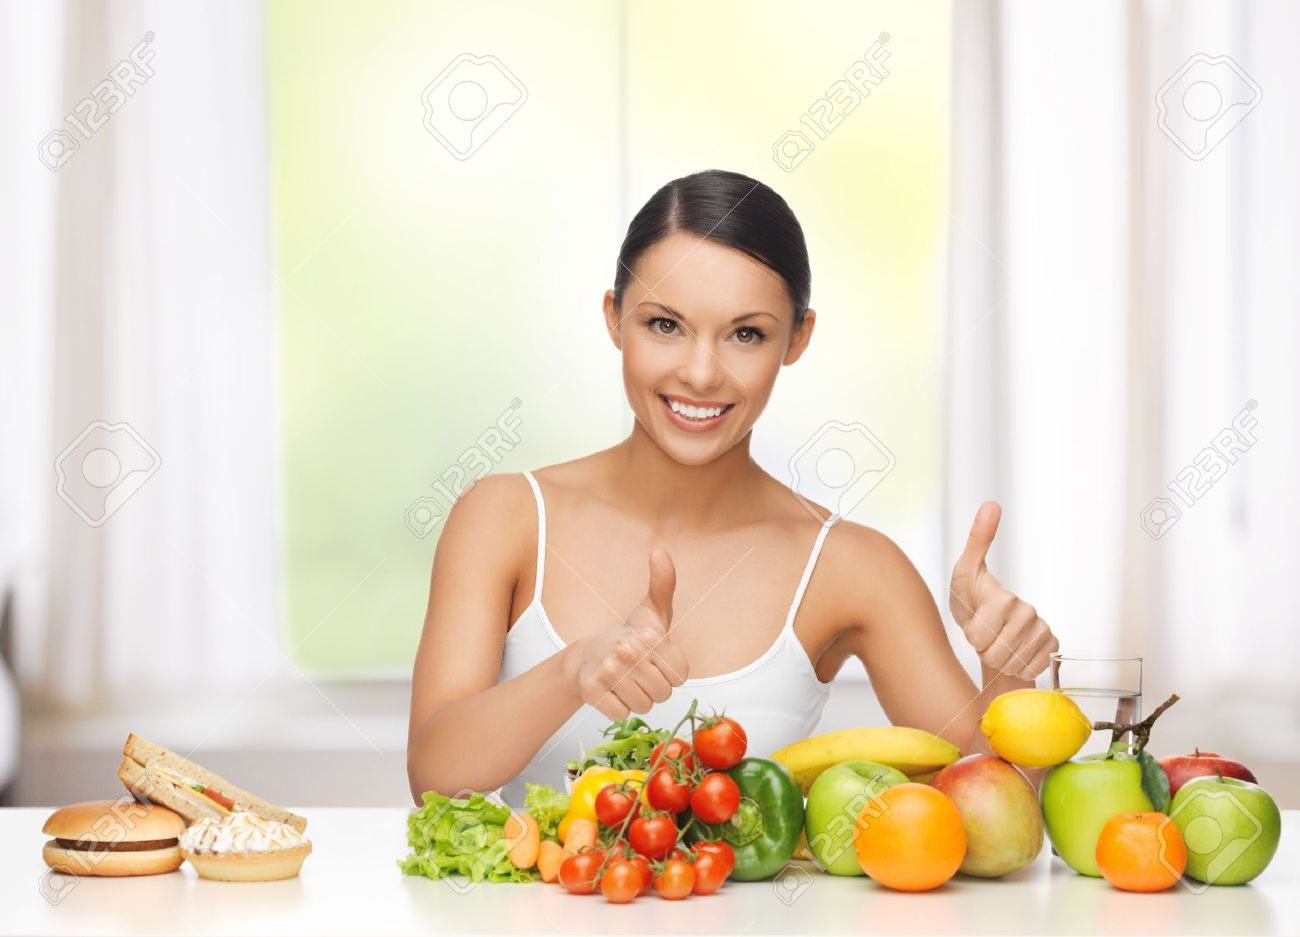 healthy and junk food concept - woman with fruits rejecting hamburger and cake Stock Photo - 21680047